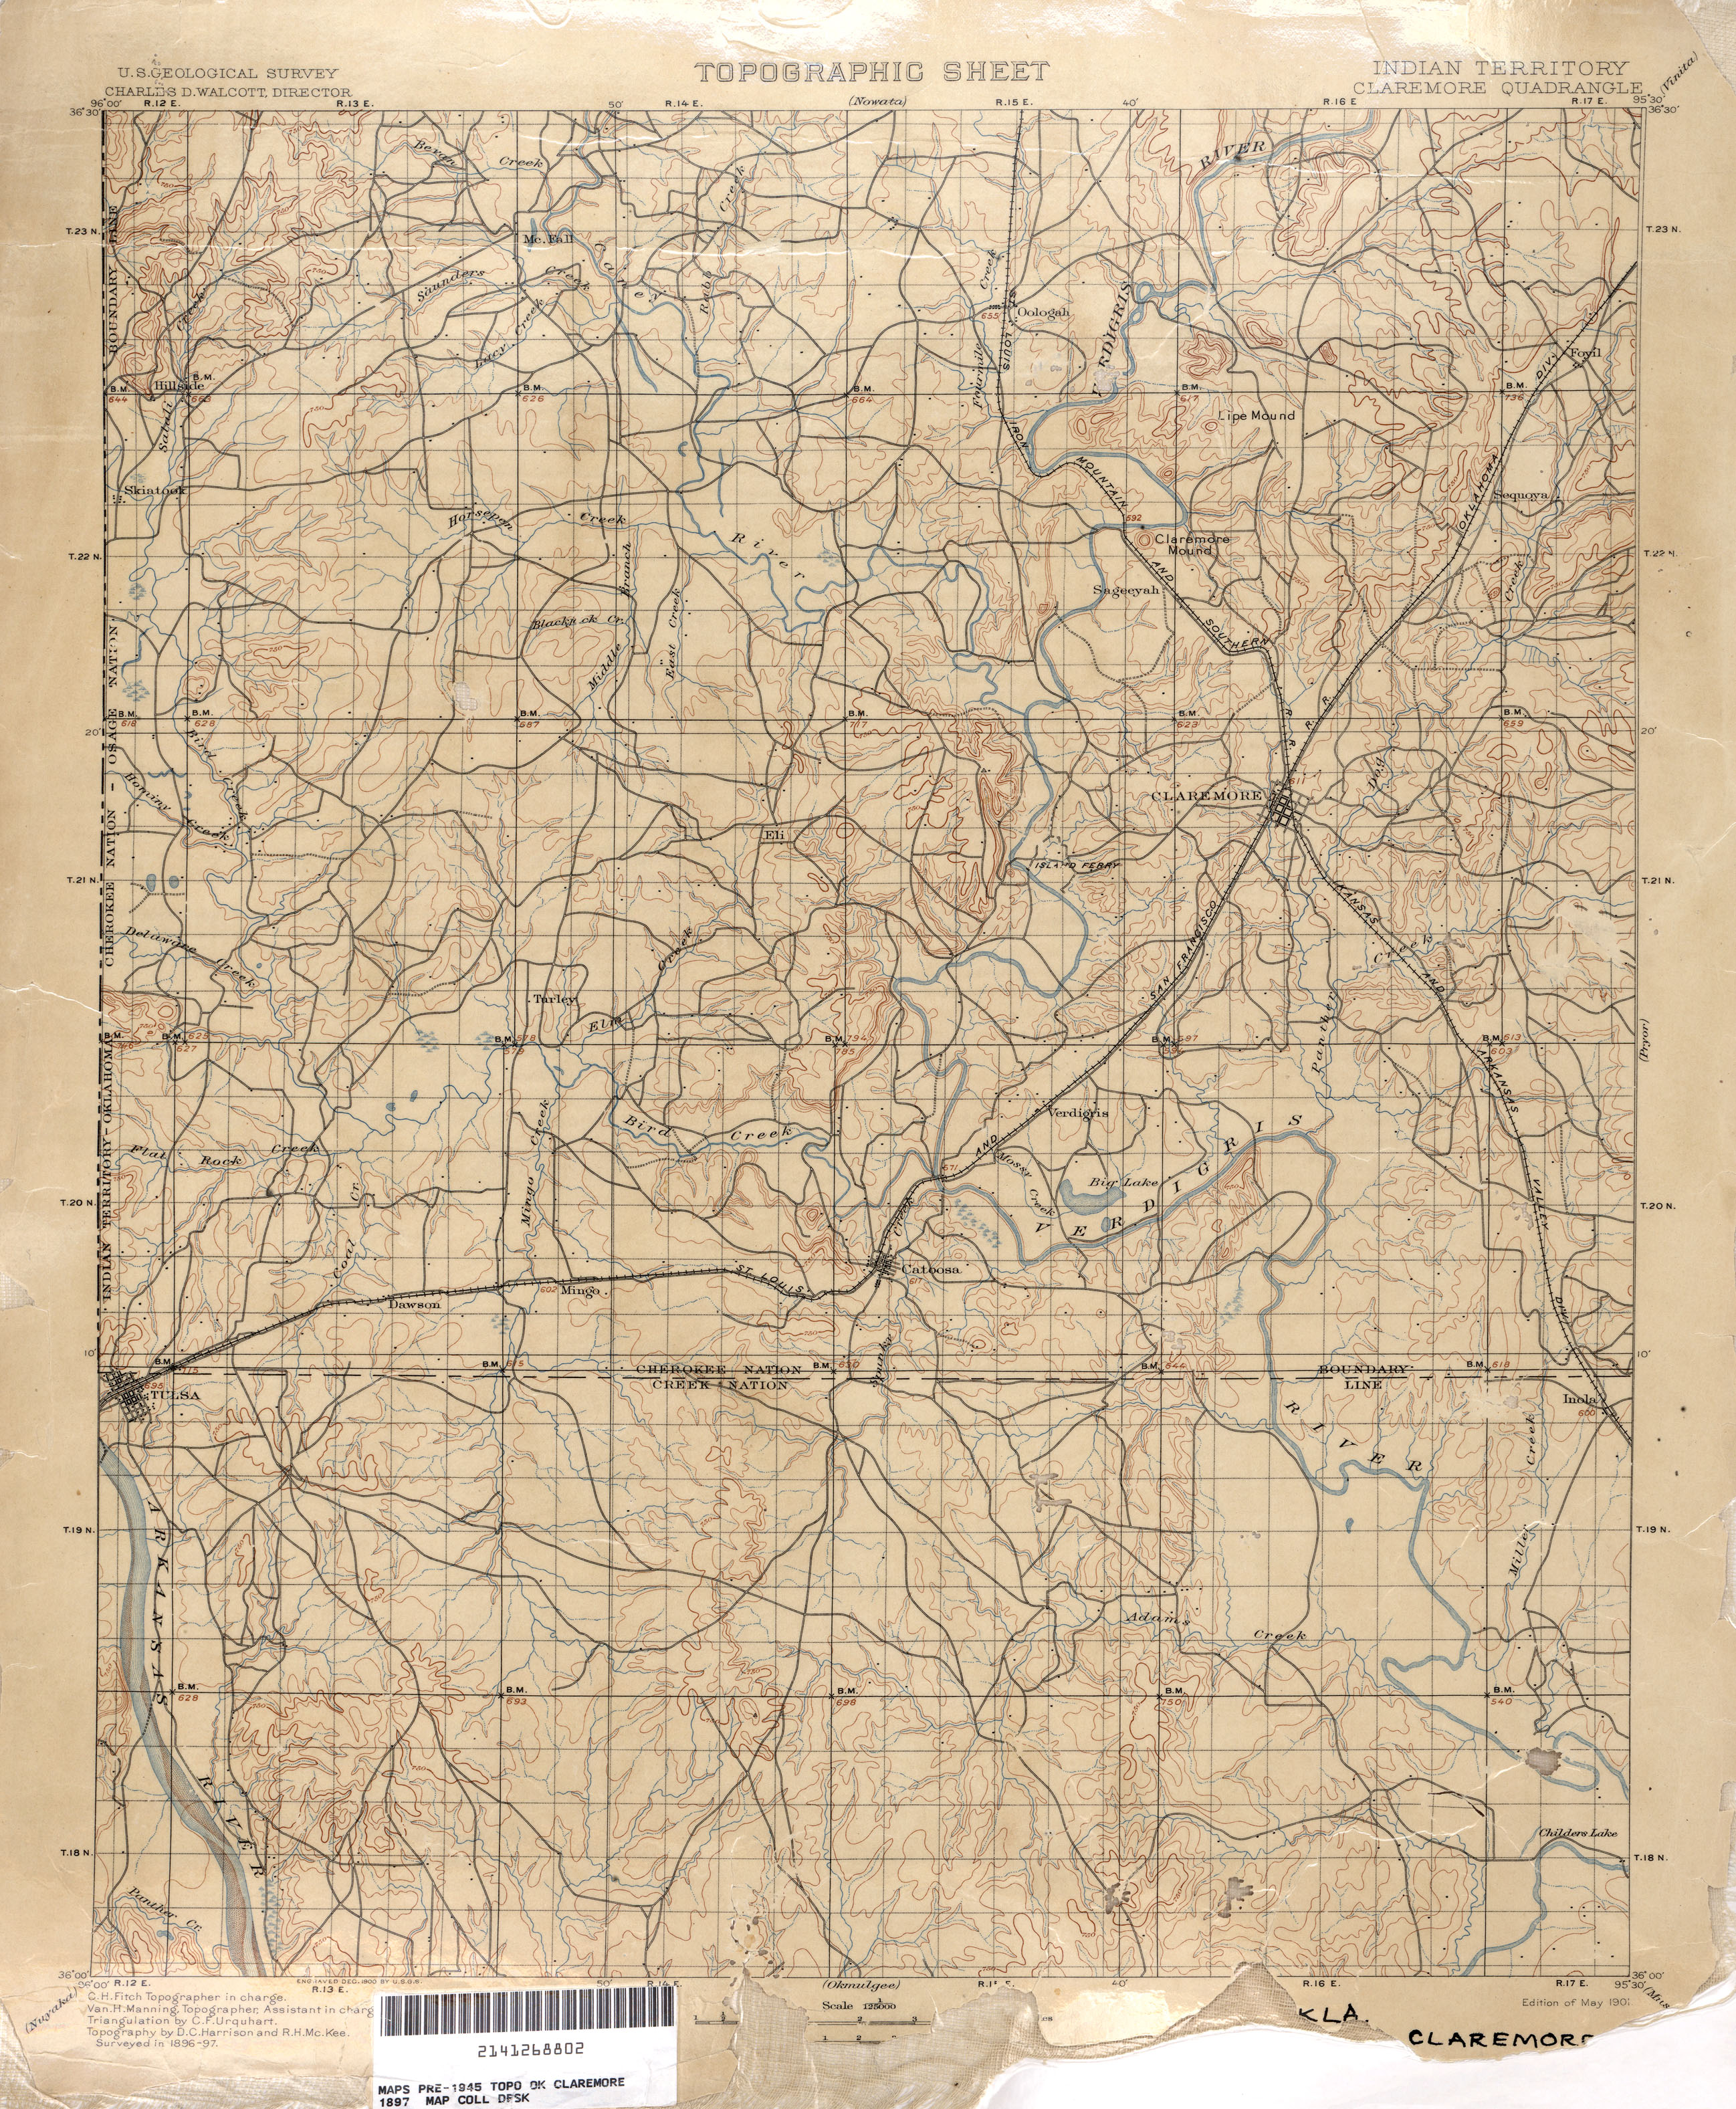 Oklahoma Historical Topographic Maps - Perry-Castañeda Map ... on us map ok, city of kingfisher ok, oklahoma map sallisaw ok, city of norman ok, geography of ok, text of ok, county map ok, weather of ok, oklahoma map woodward ok, city of haskell ok, oklahoma map mcalester ok, drawing of ok, city of hartshorne ok, google maps mustang ok, city of ada ok, city of tulsa ok, sort of ok, city of ryan ok, city of del city ok, area code map tulsa ok,